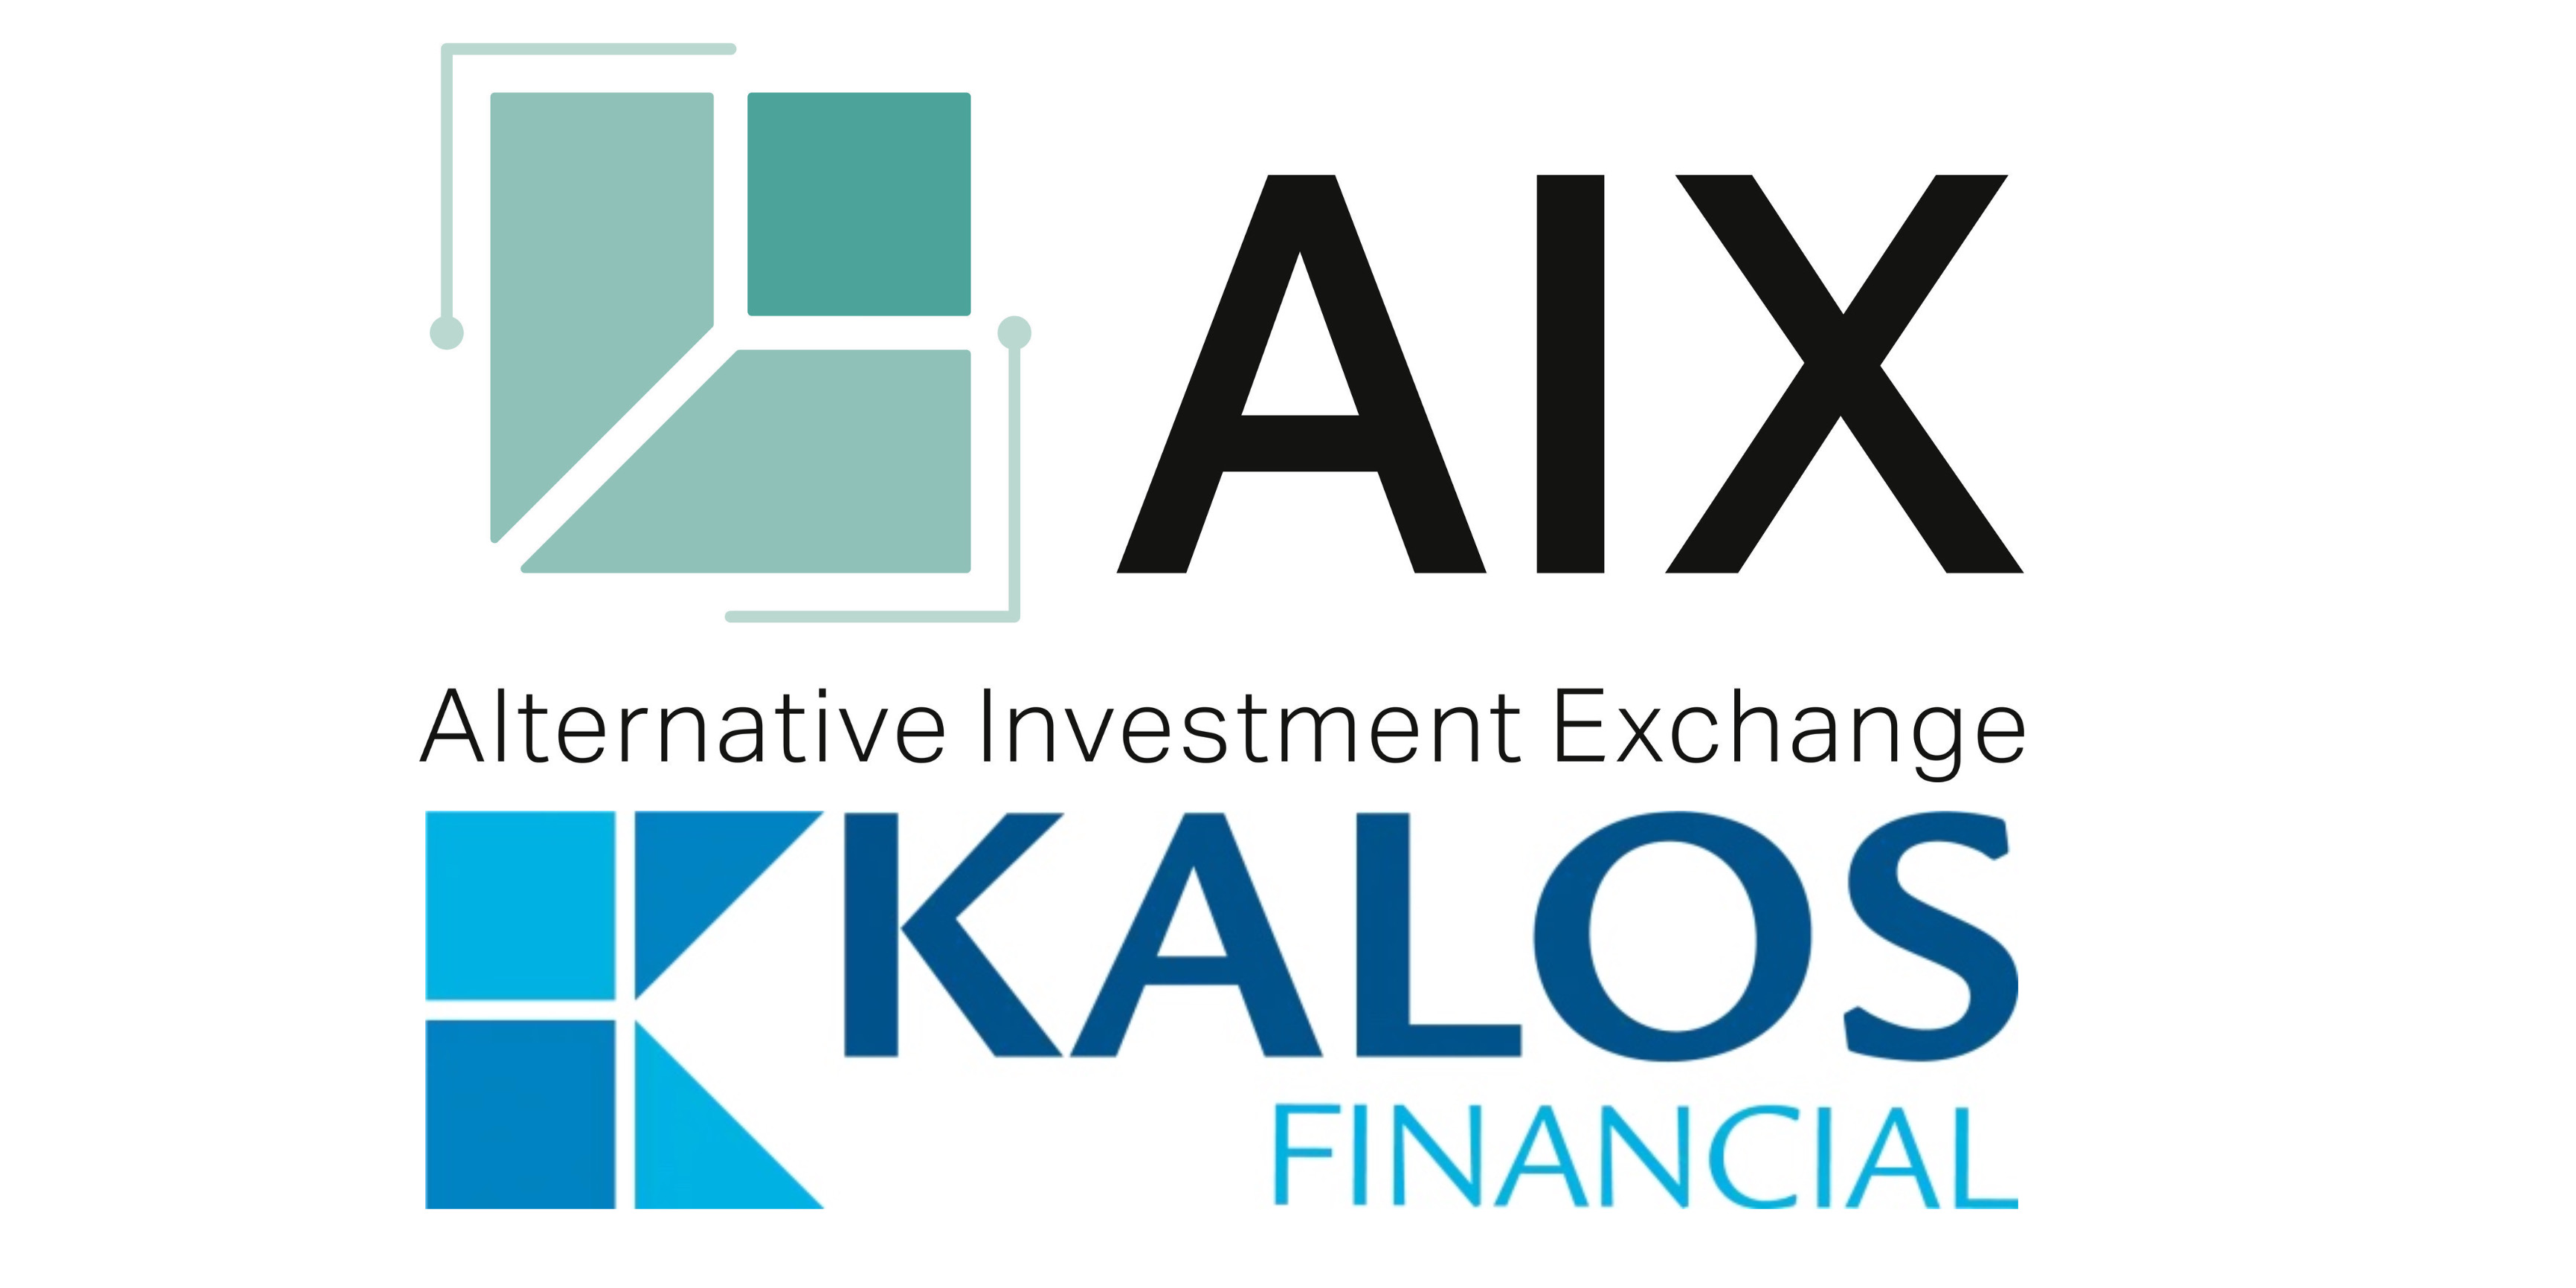 Alternative Investment Exchange (AIX) and Kalos Financial Partner to Streamline Processes and Advance Alt Investing